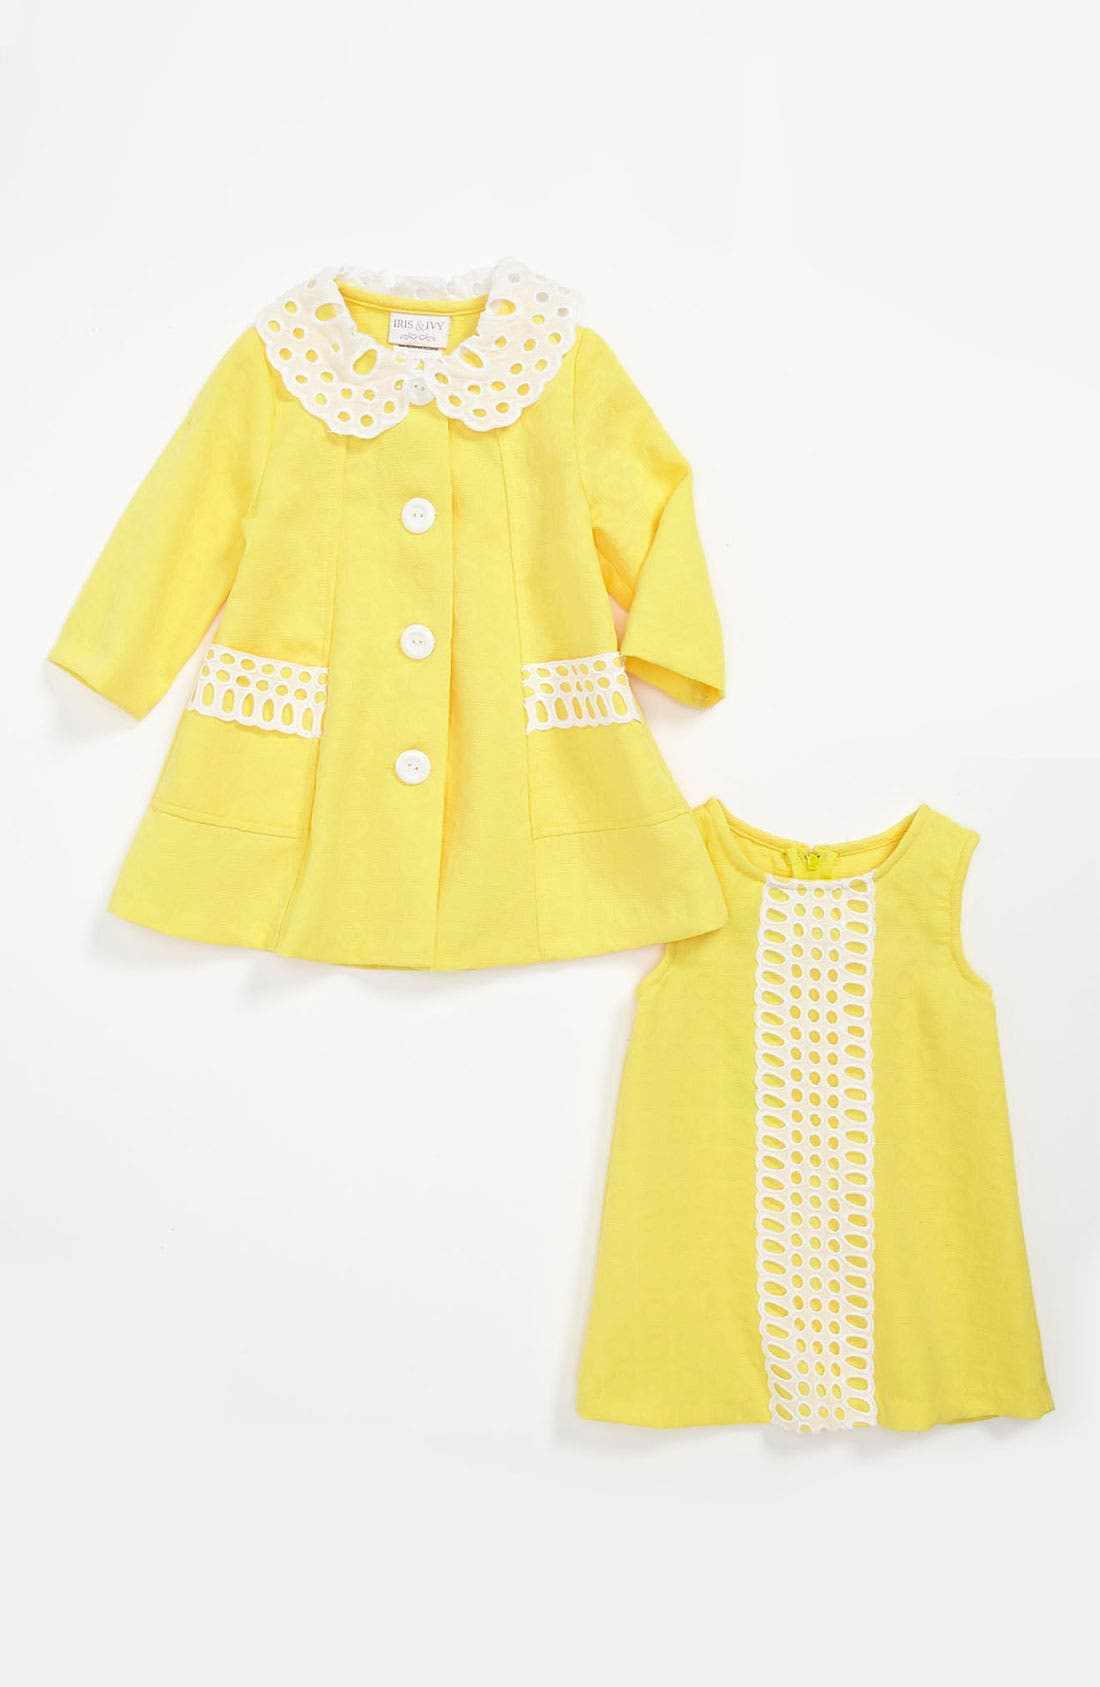 Main Image - Iris & Ivy Shift Dress & Jacket (Infant)